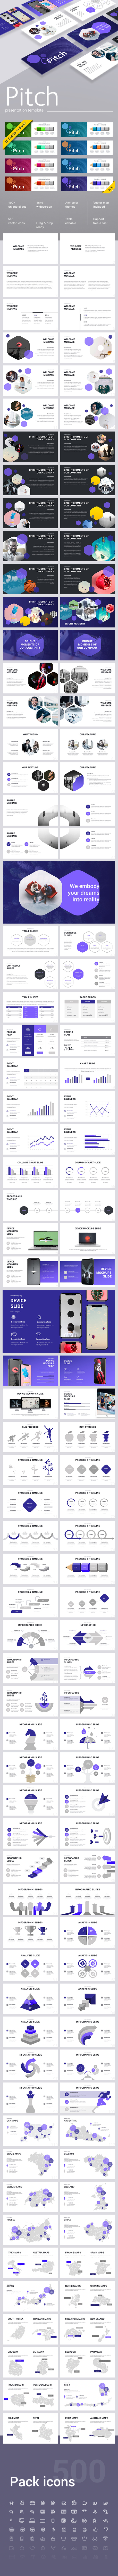 Pitch Powerpont Template - Pitch Deck PowerPoint Templates